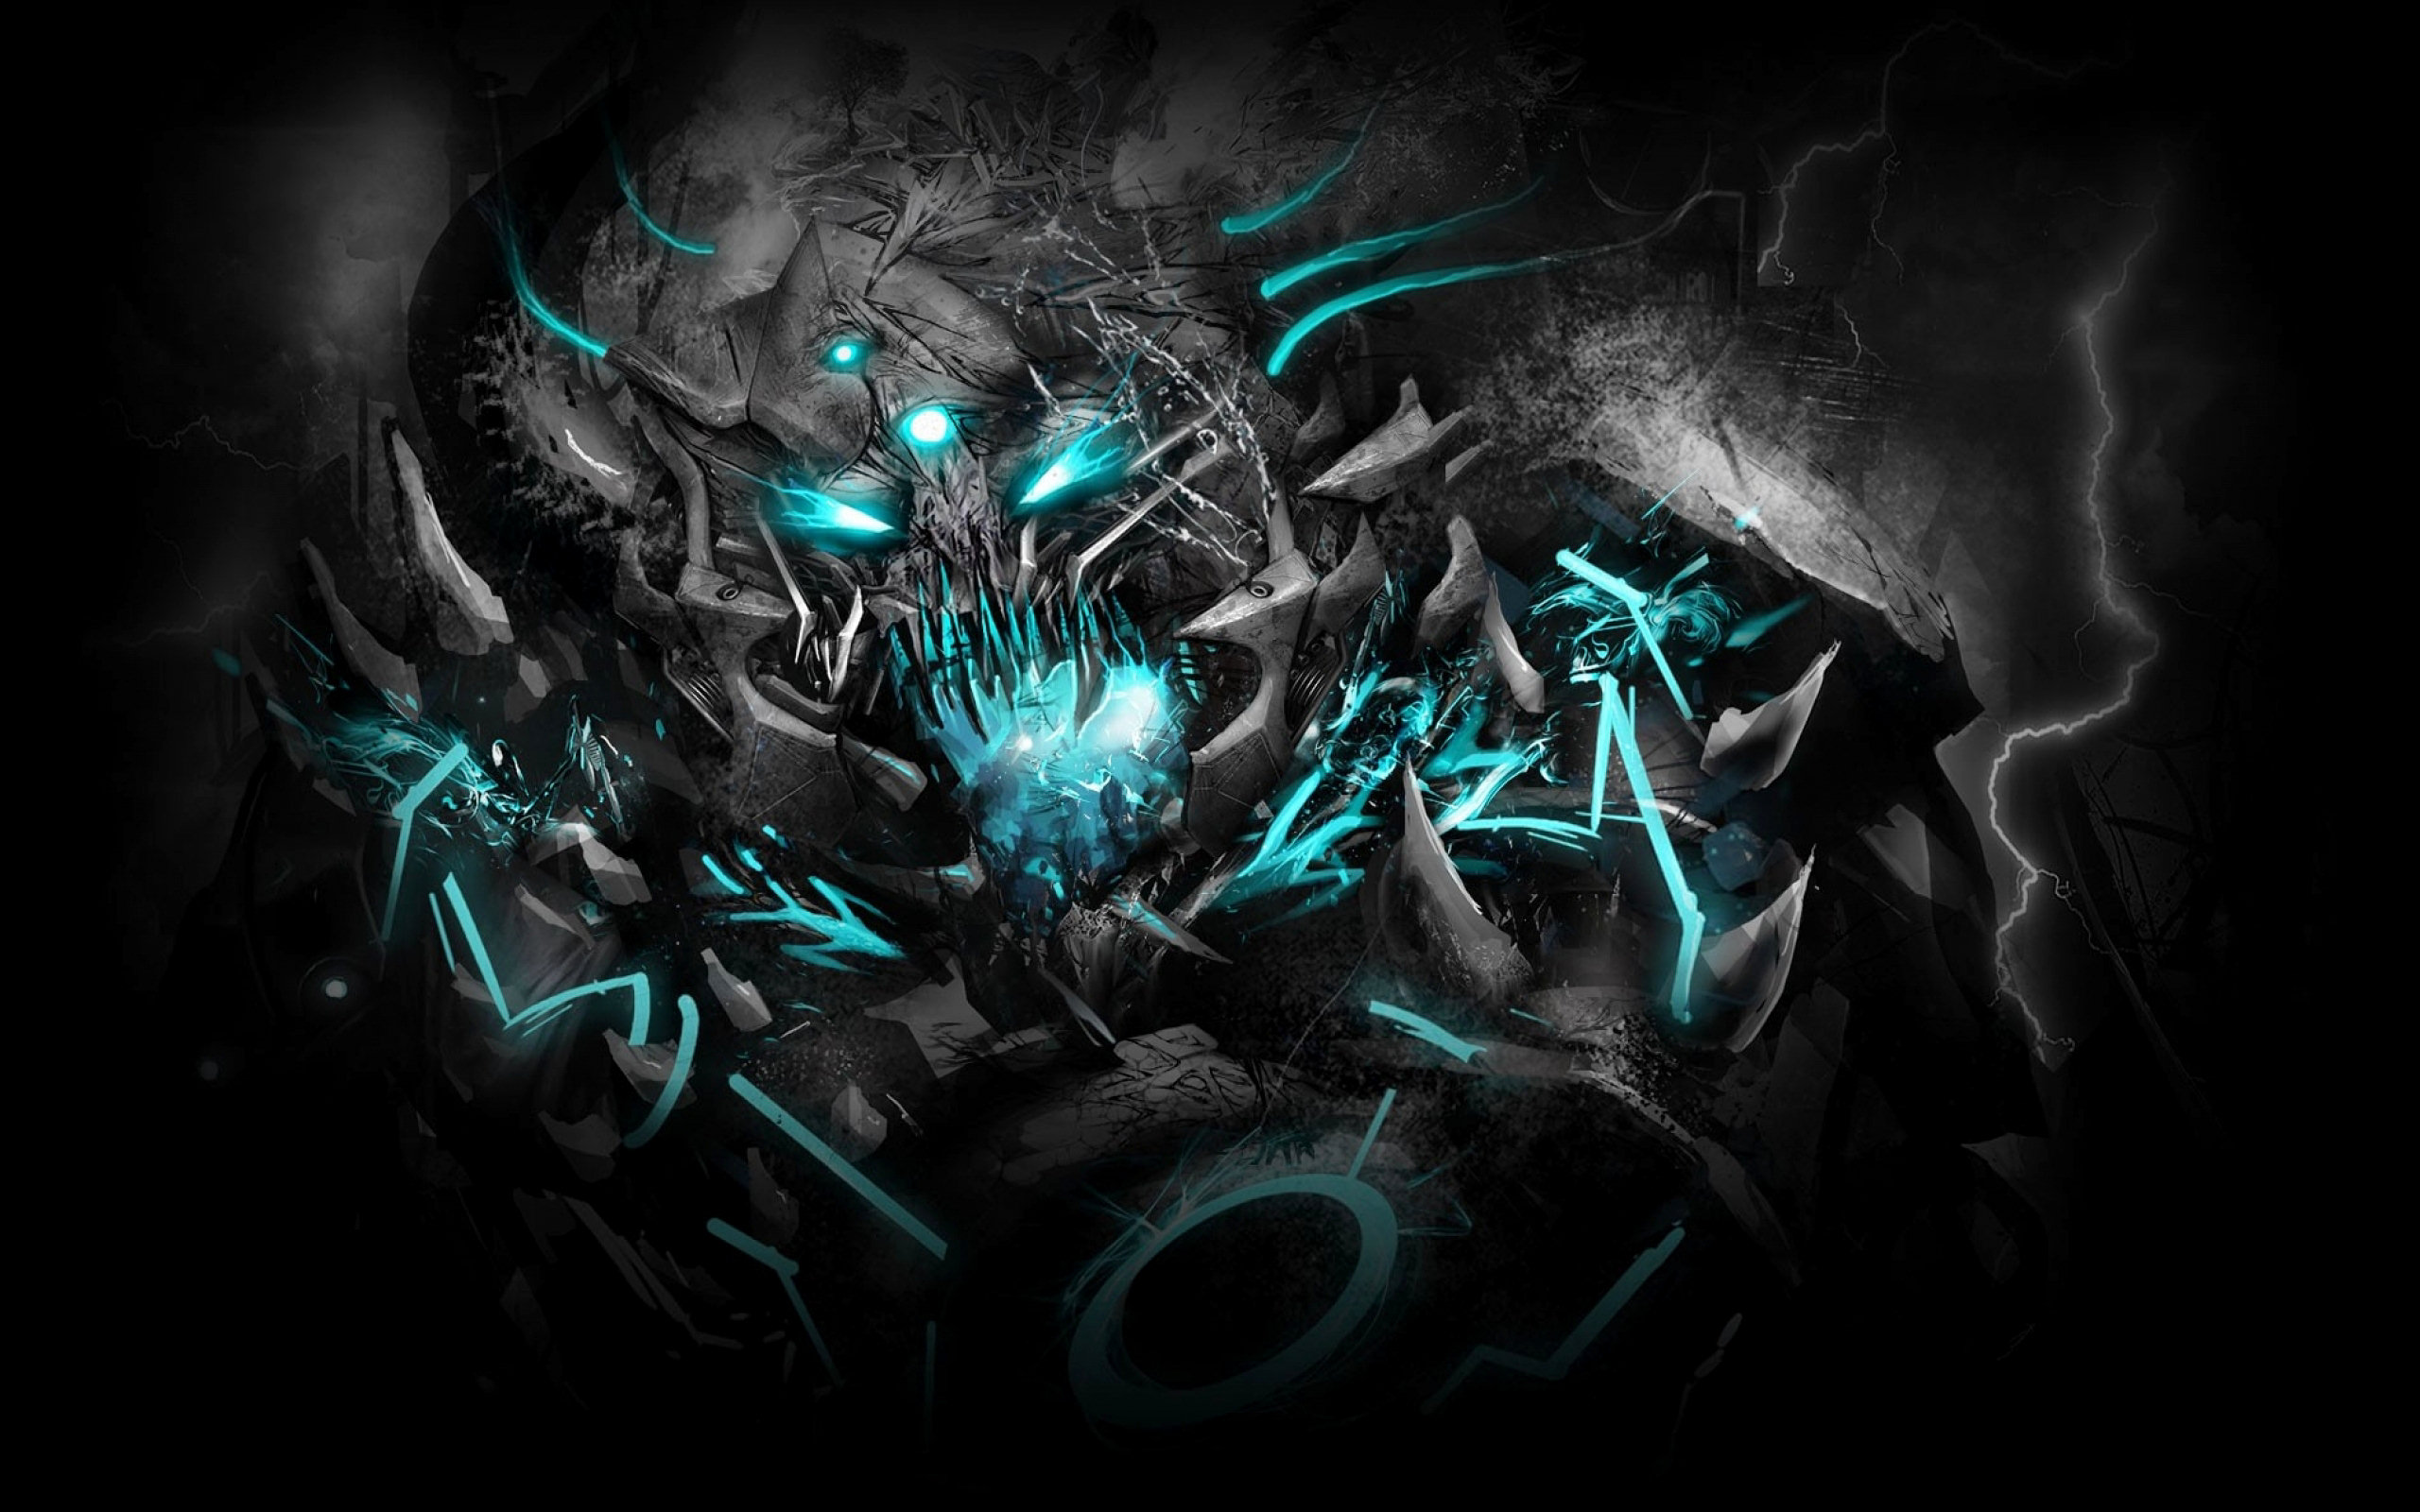 abstract dubstep wallpaper 1080p - photo #30